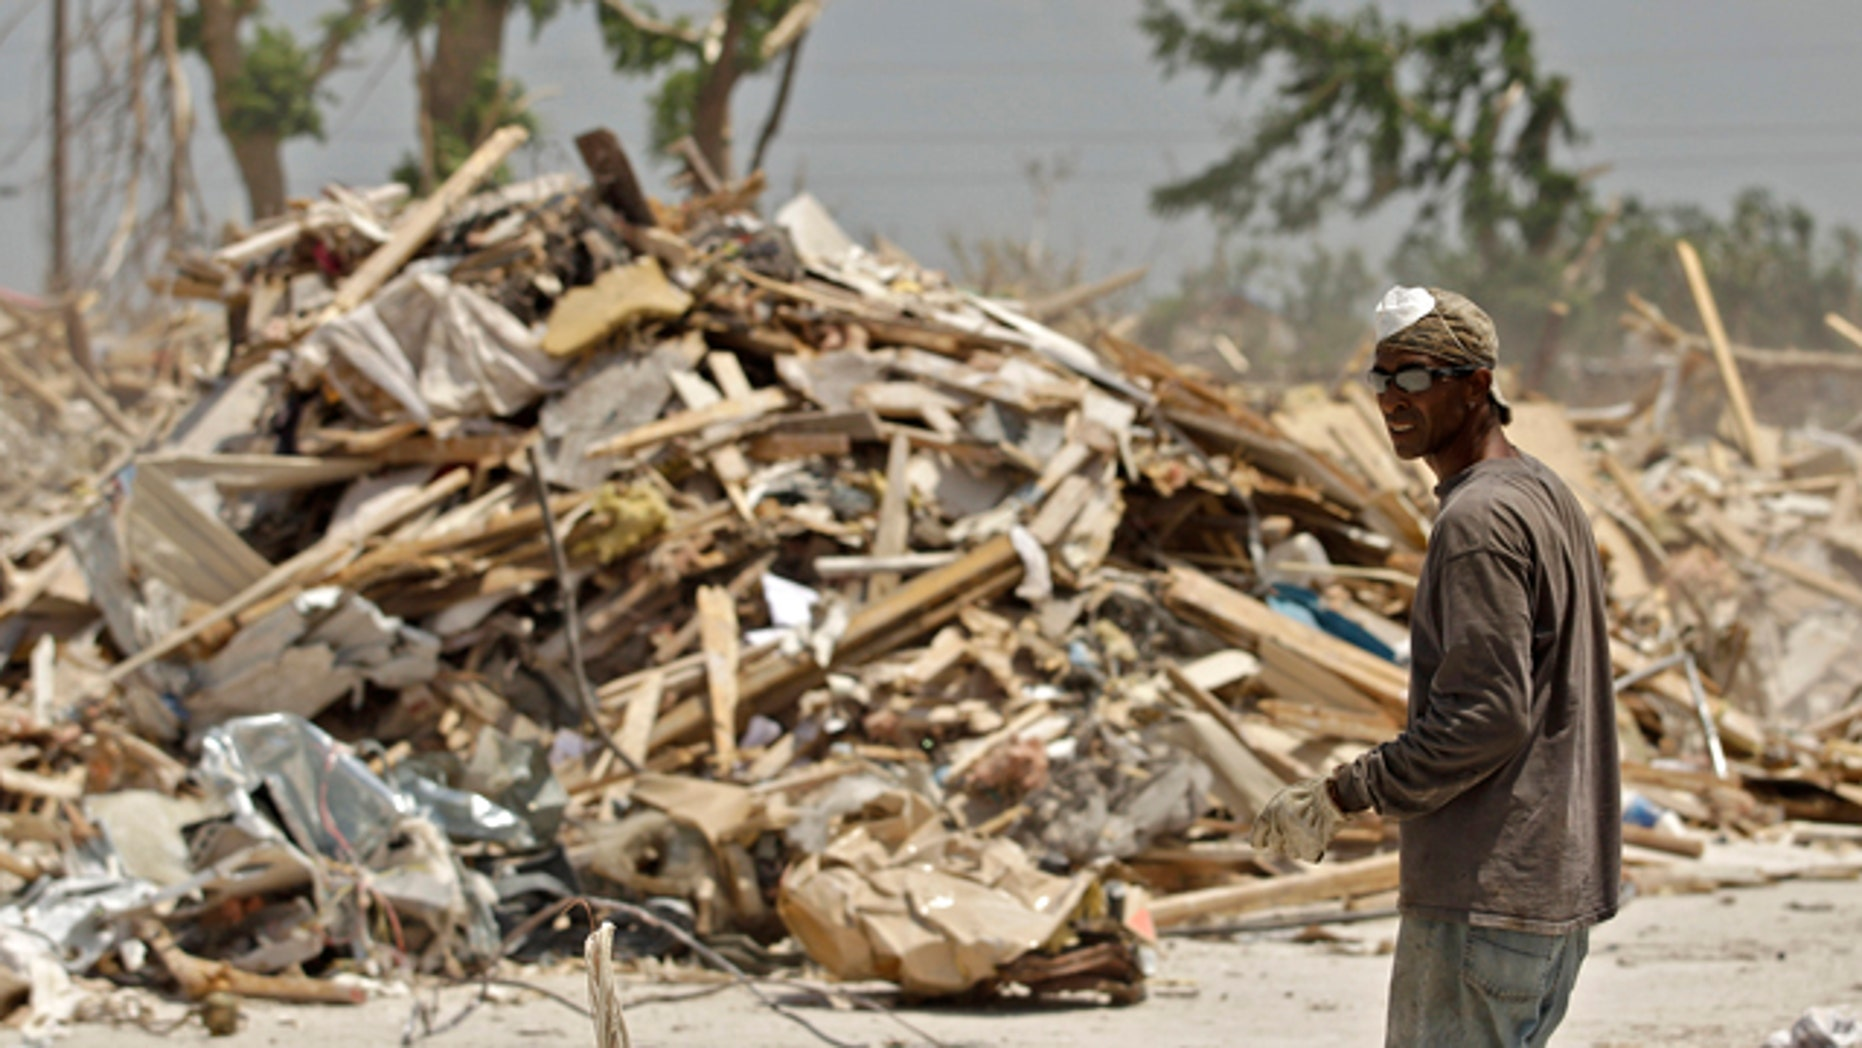 July 20: A worker salvages metal from debris at an apartment complex destroyed by Joplin's tornado.